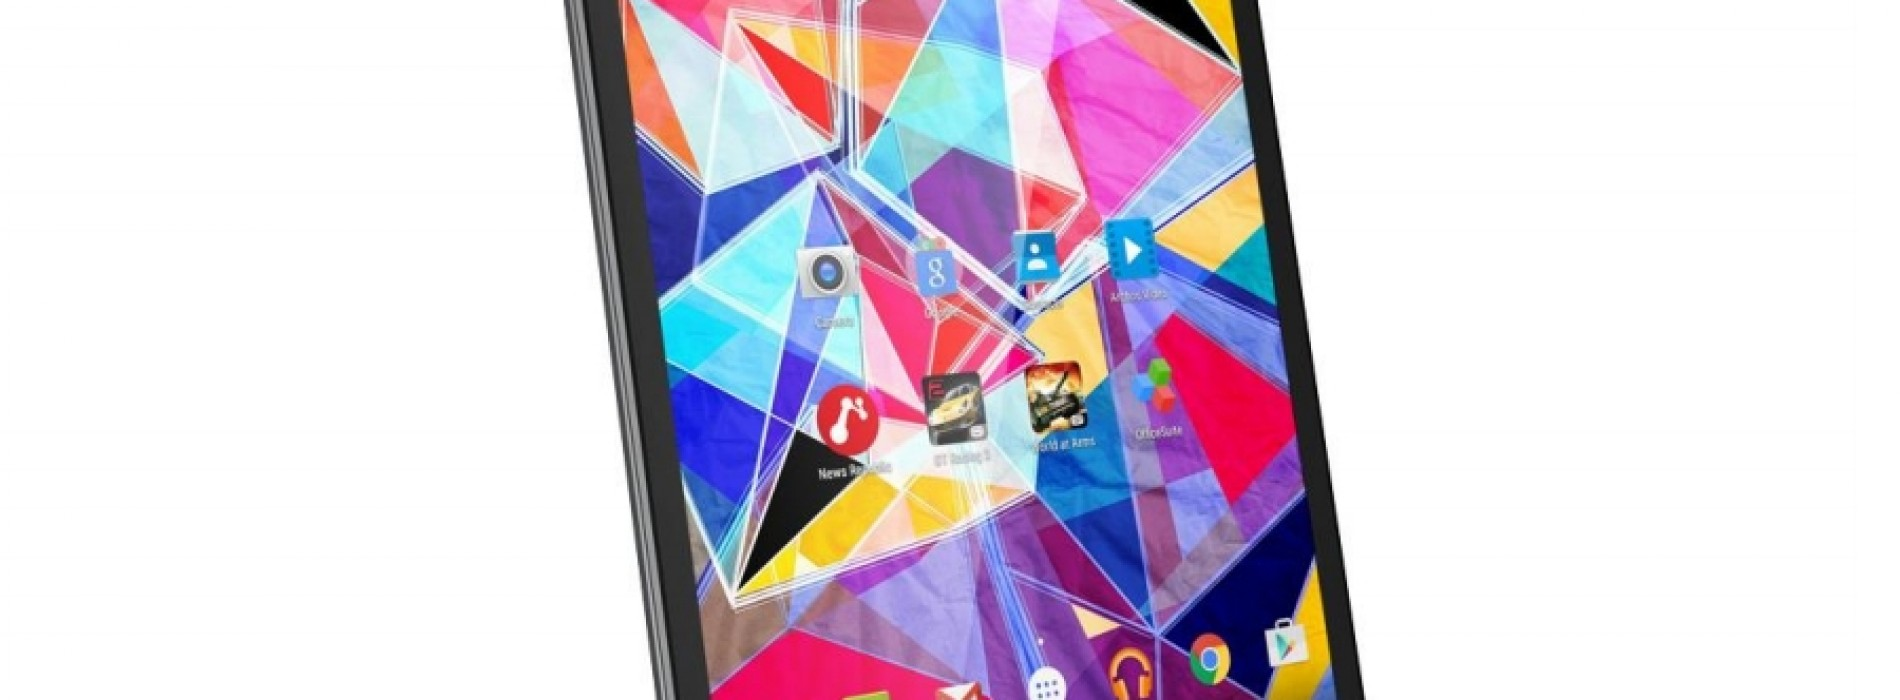 ARCHOS announces the Diamond Tab ahead of IFA